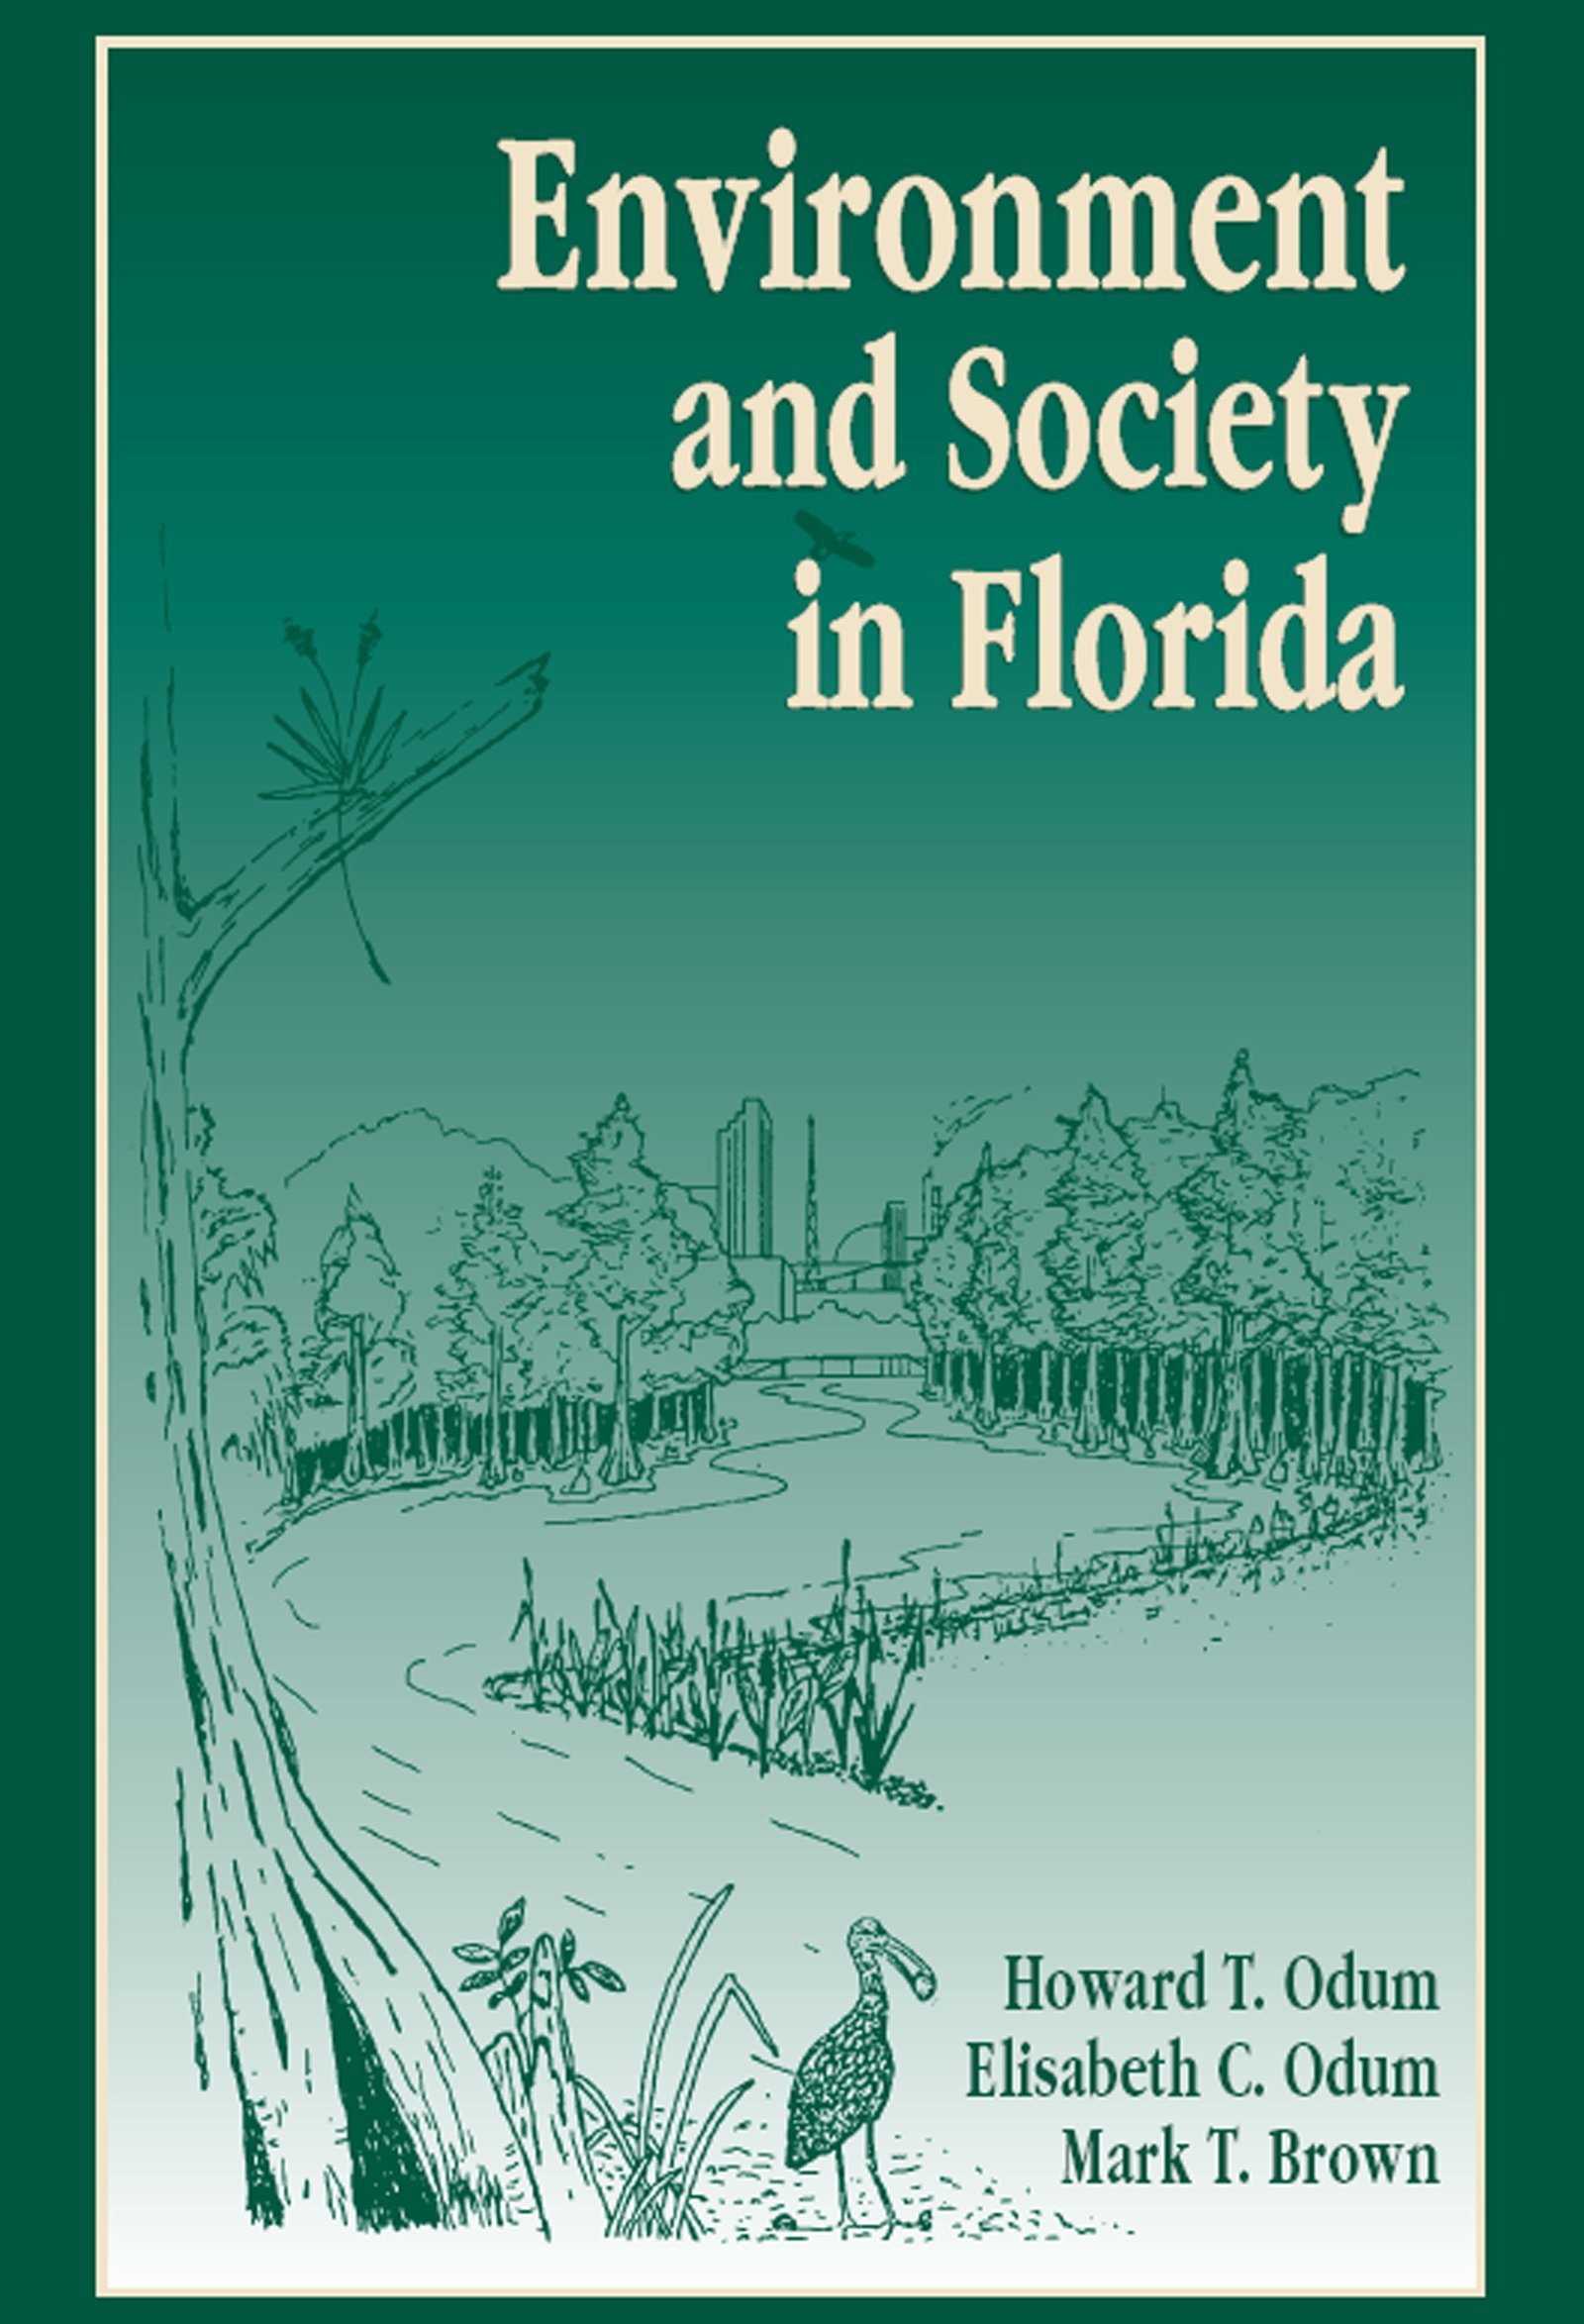 Image OfEnvironment And Society In Florida (English Edition)